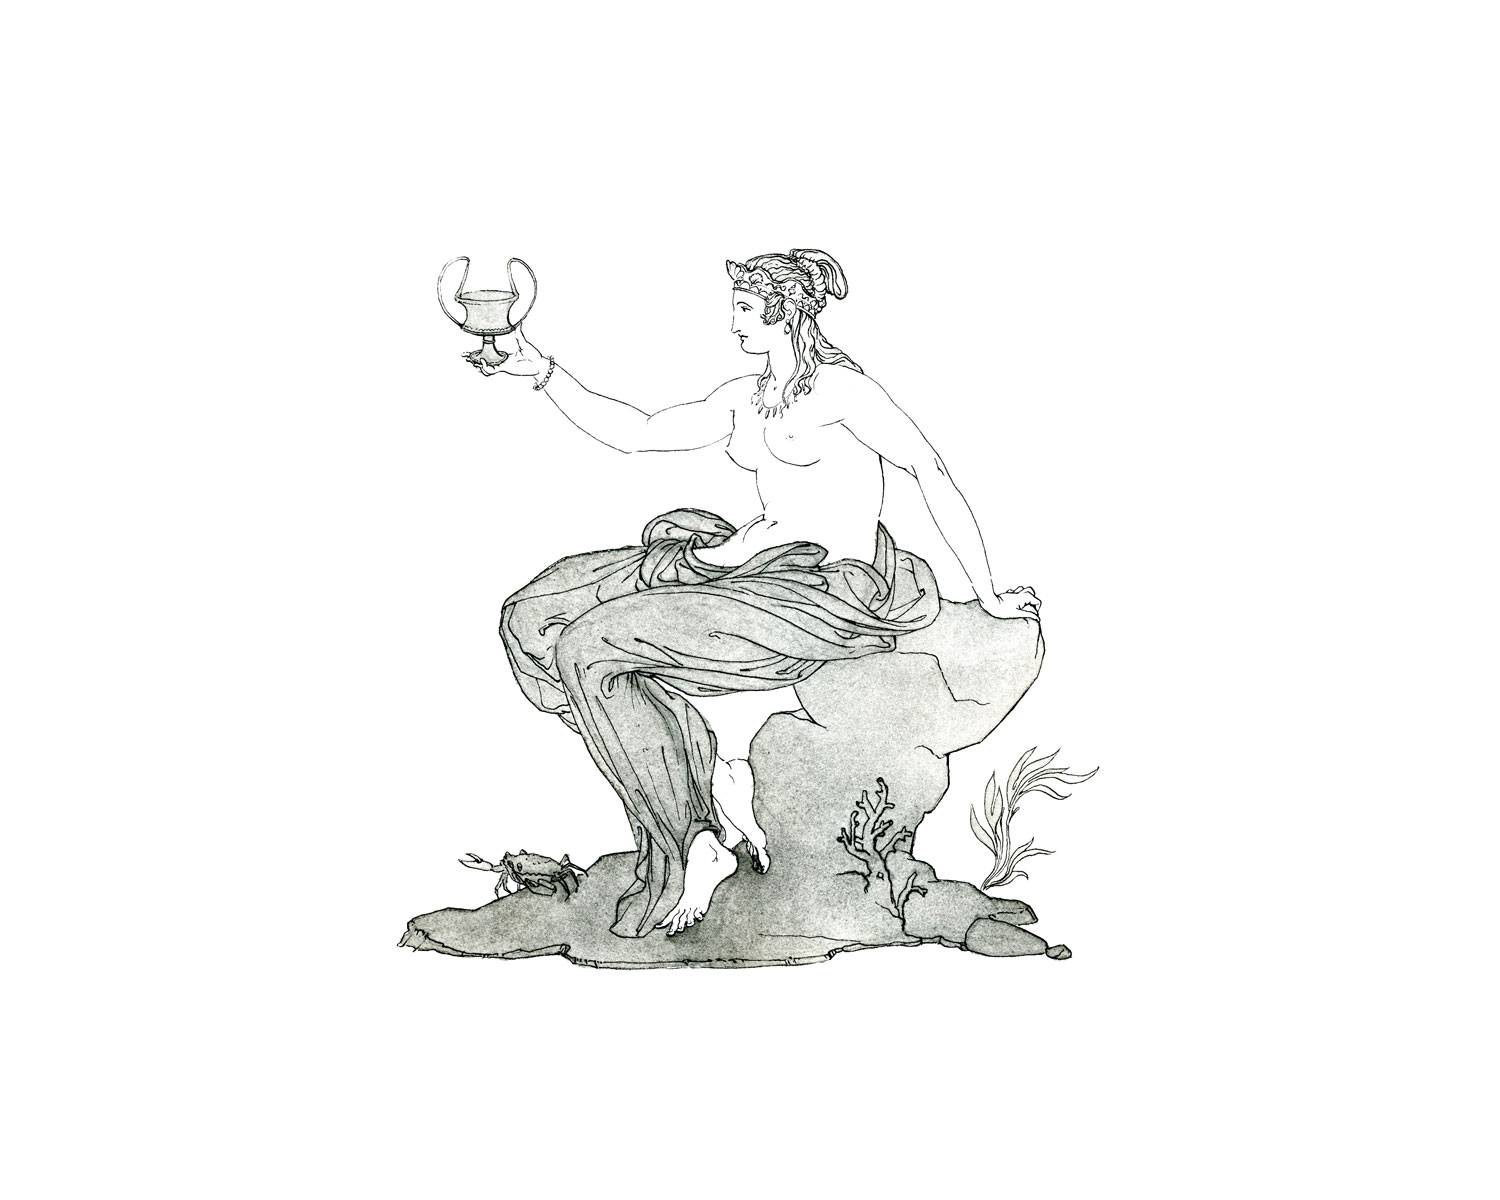 """Thetis  2016, Ink and wash on paper, 14 1/4"""" x 10 1/4"""" © Leonard Porter MMXVI"""